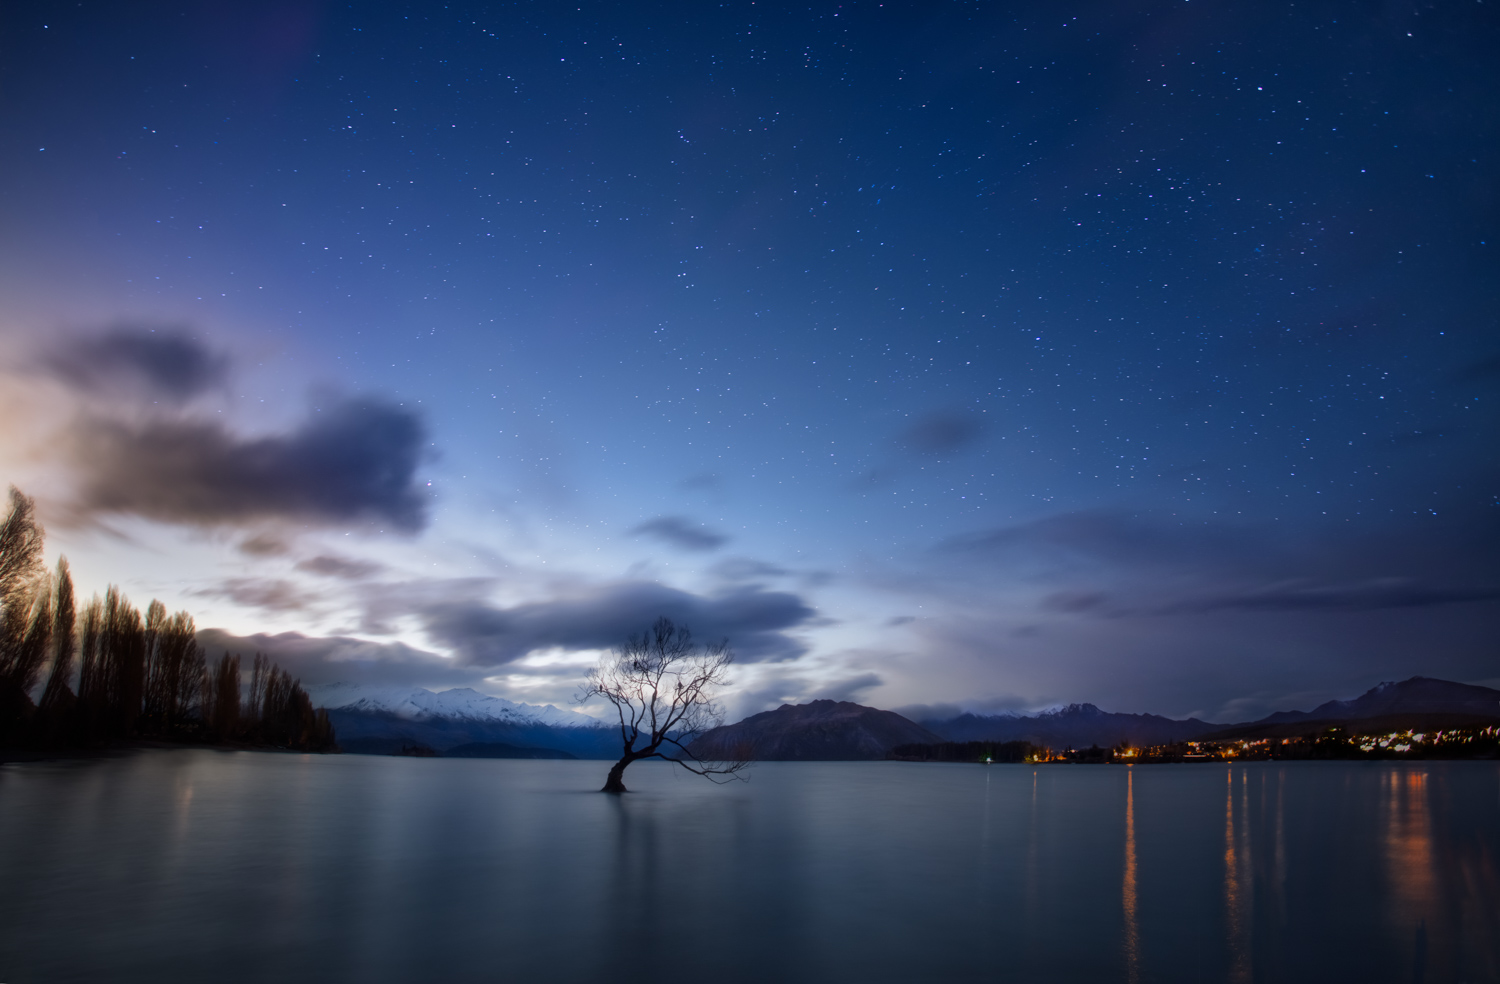 Night Sky Photography Workshop - The Wanaka Tree by George Triantafillou